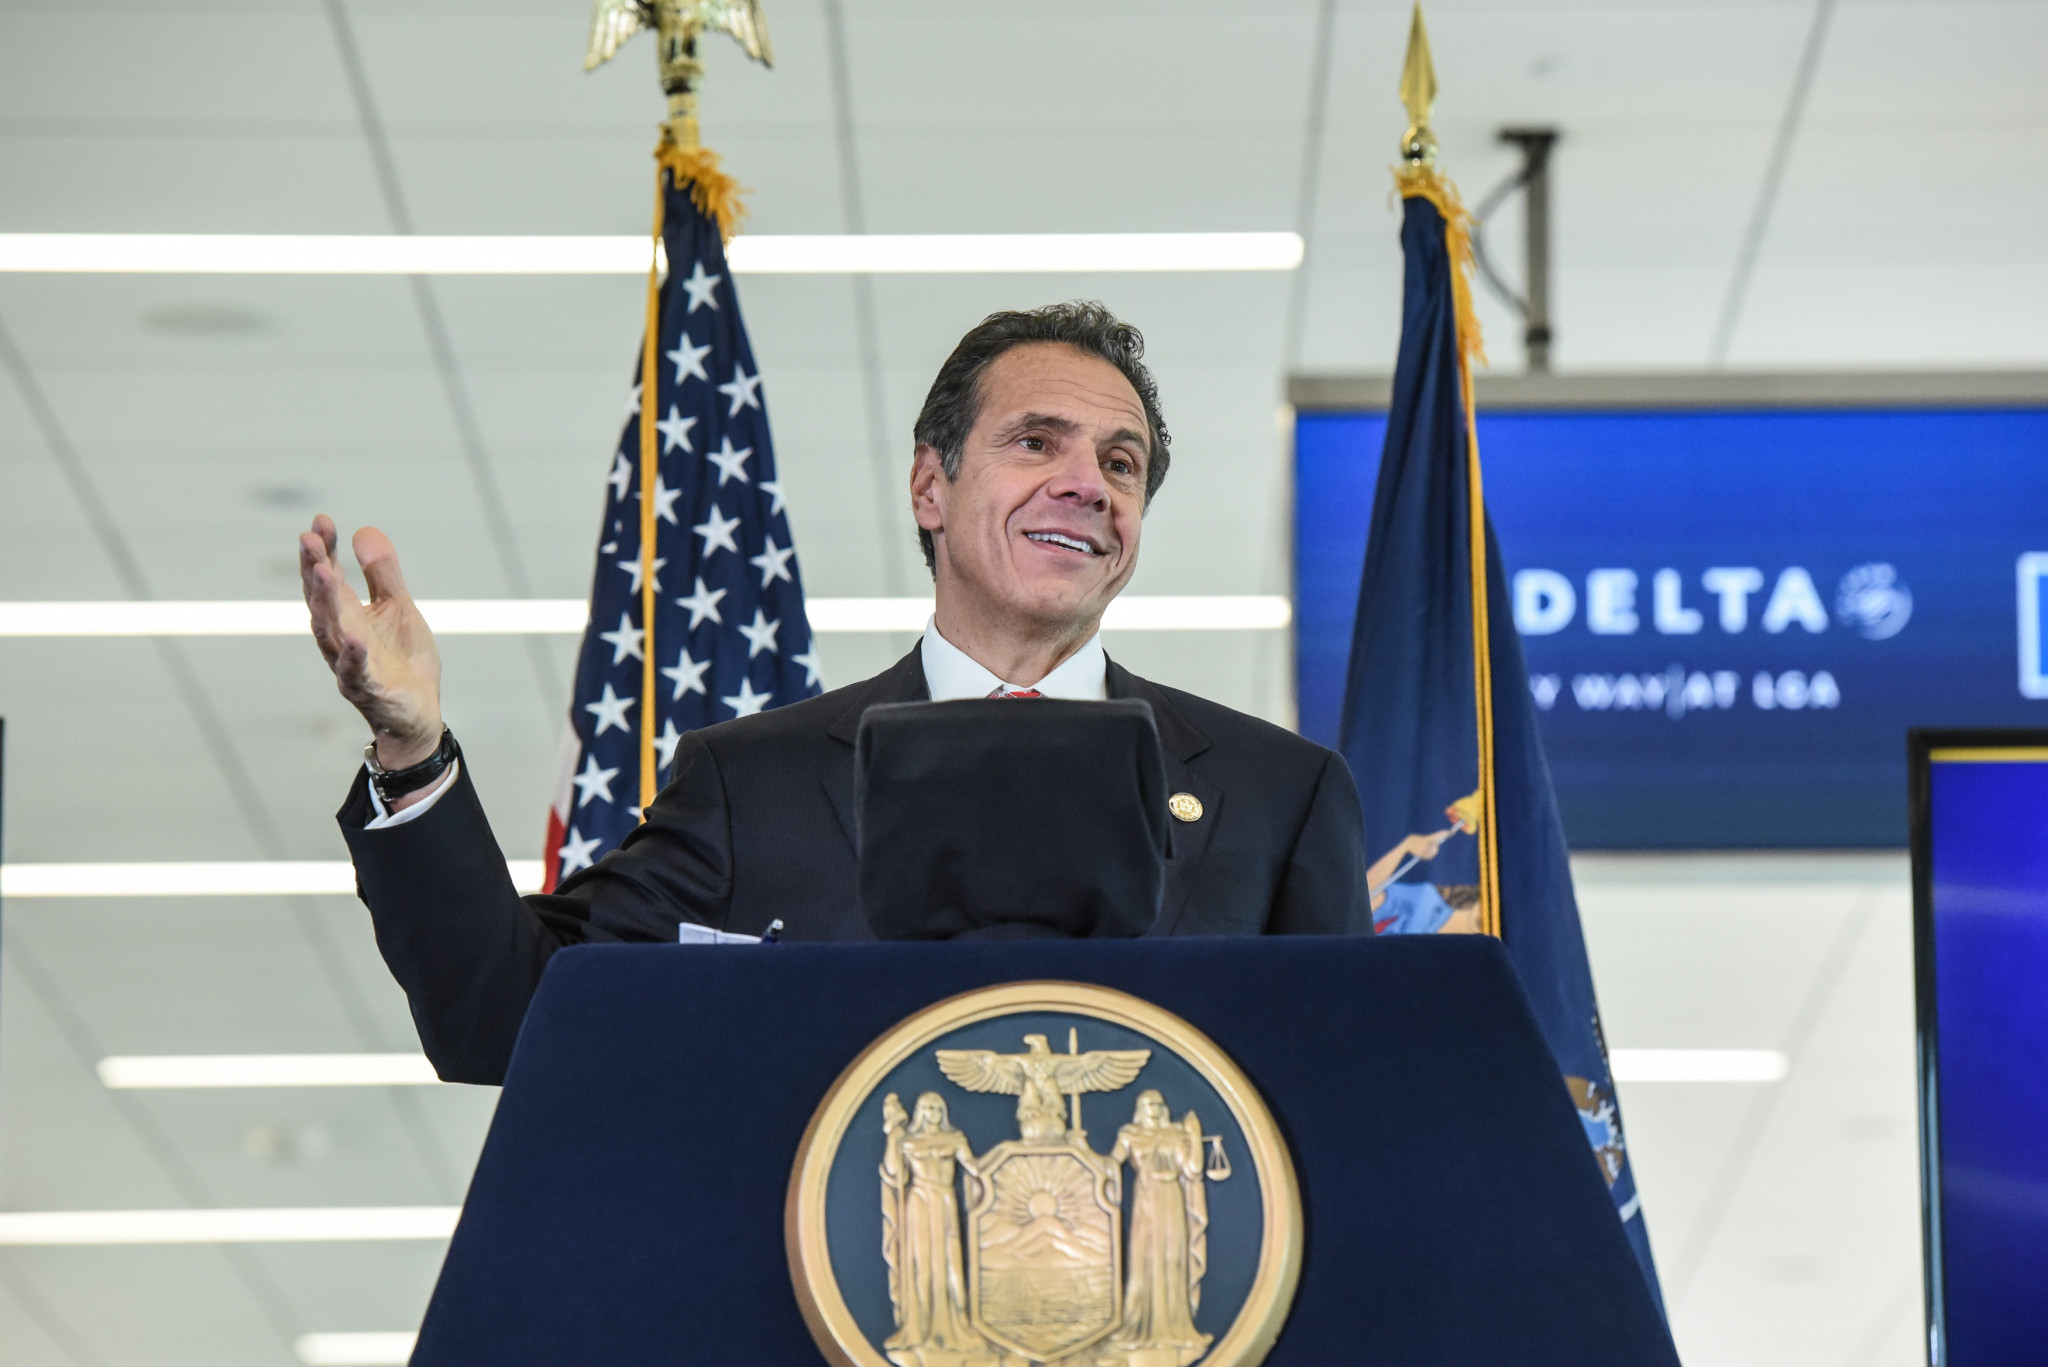 New York Governor Andrew Cuomo has proposed $147 million in new capital funding for the State's ORDA to keep upgrading winter sports venues ©Getty Images